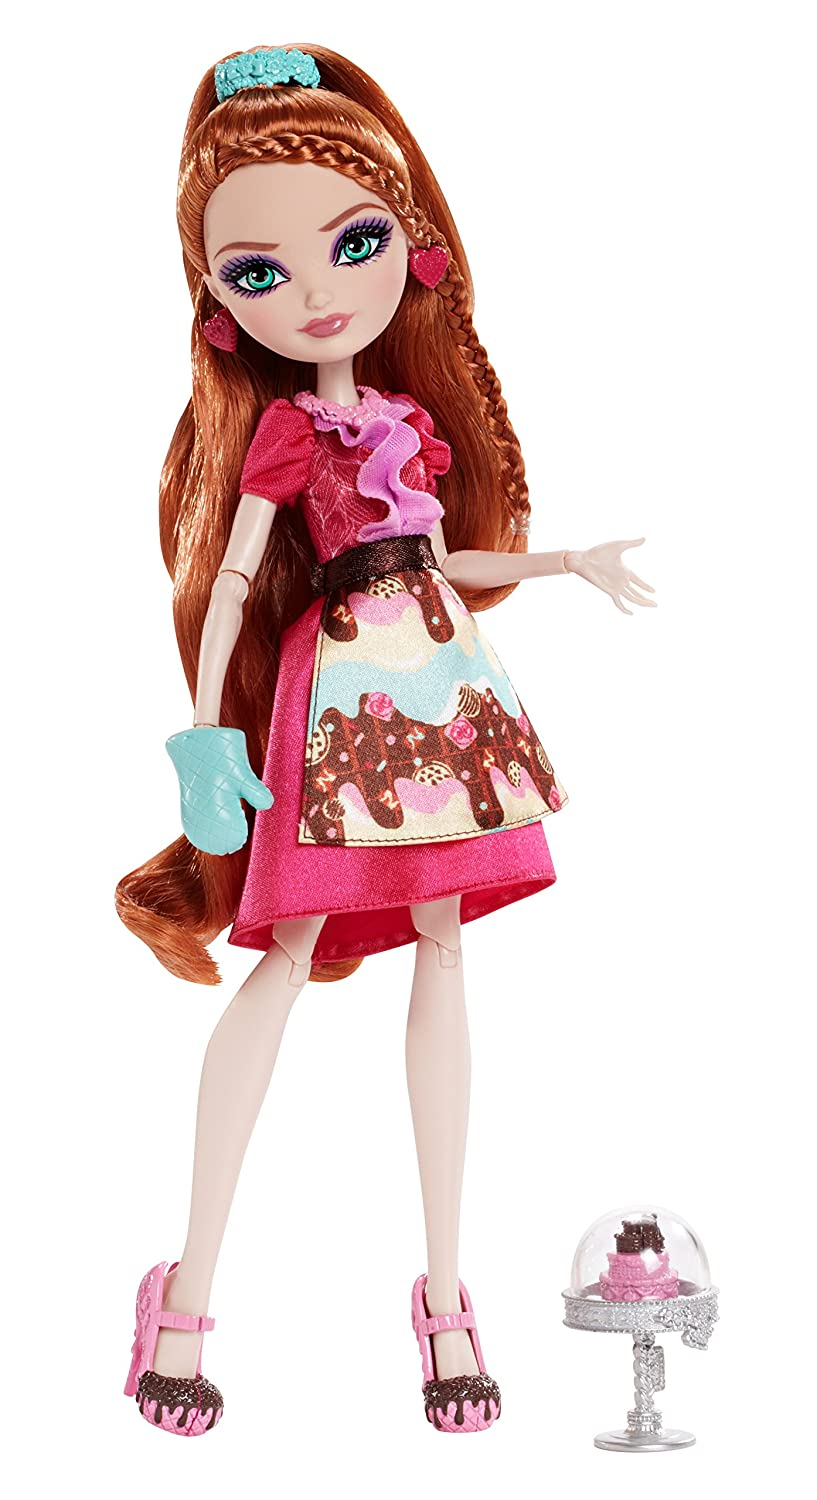 Ever After High Sugar Coated Holly O'Hair Doll mattel ever after high dvj20 отважные принцессы холли о хэир